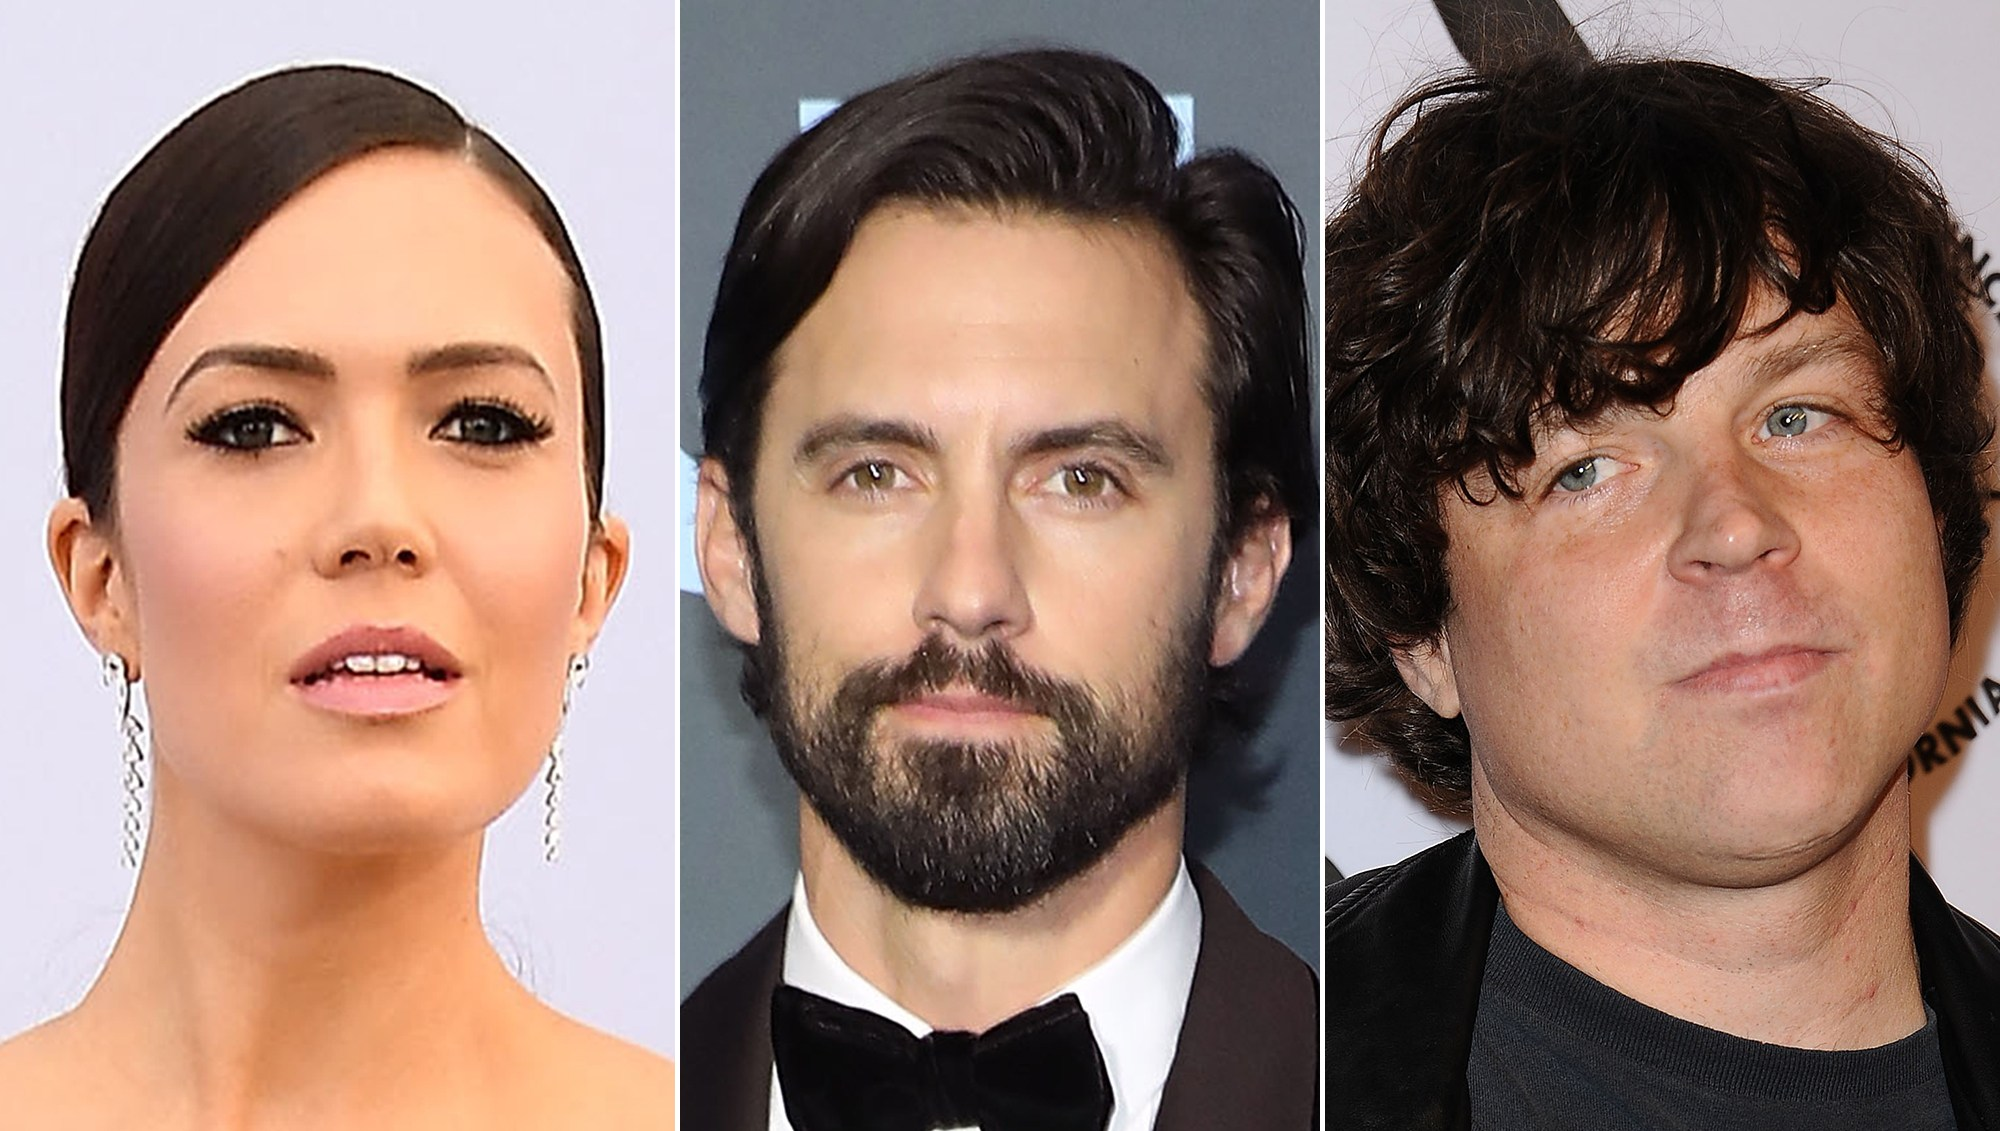 Milo Ventimiglia Is 'Incredibly Proud' of Costar Mandy Moore for Speaking Out About Her Ex Ryan Adams